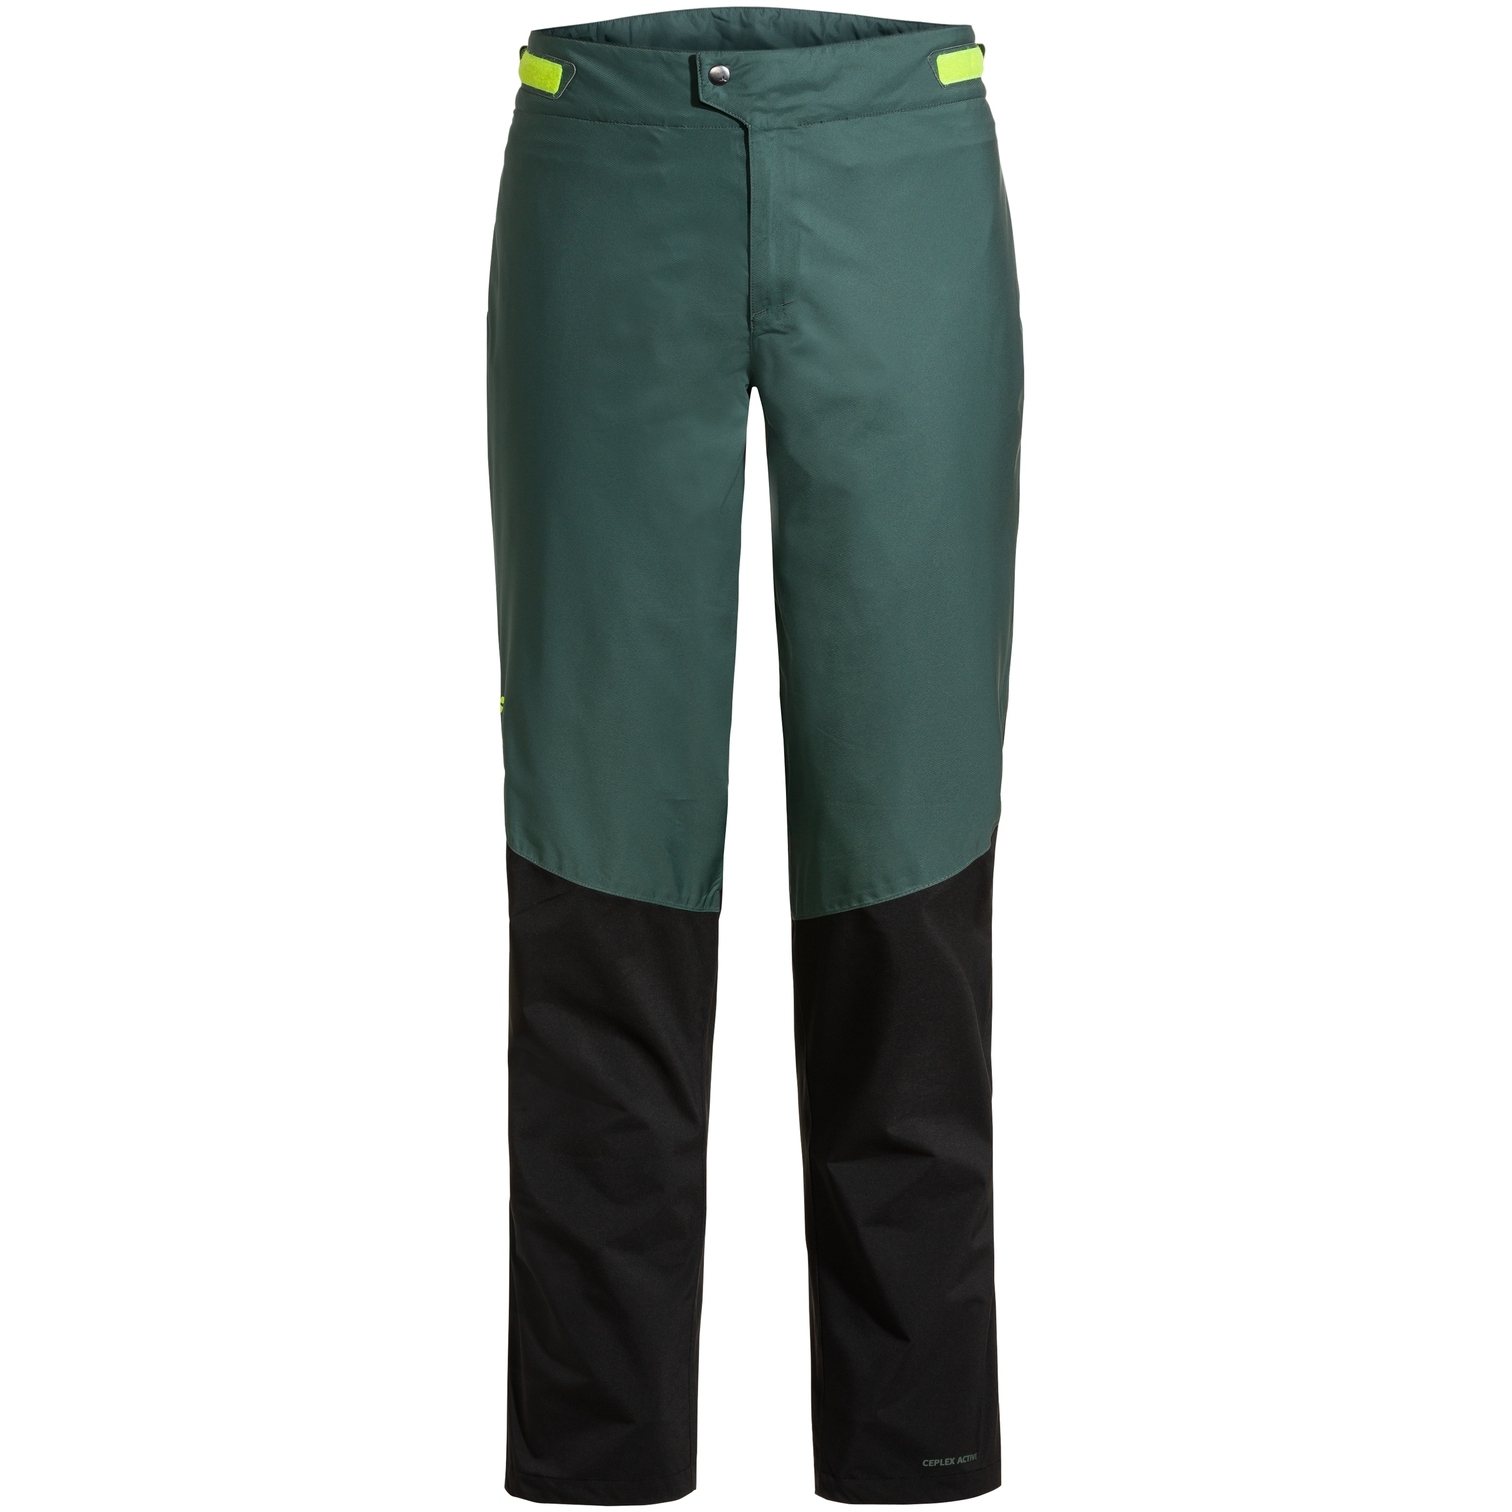 Vaude Men's All Year Moab 2in1 Rain Pants - dusty forest